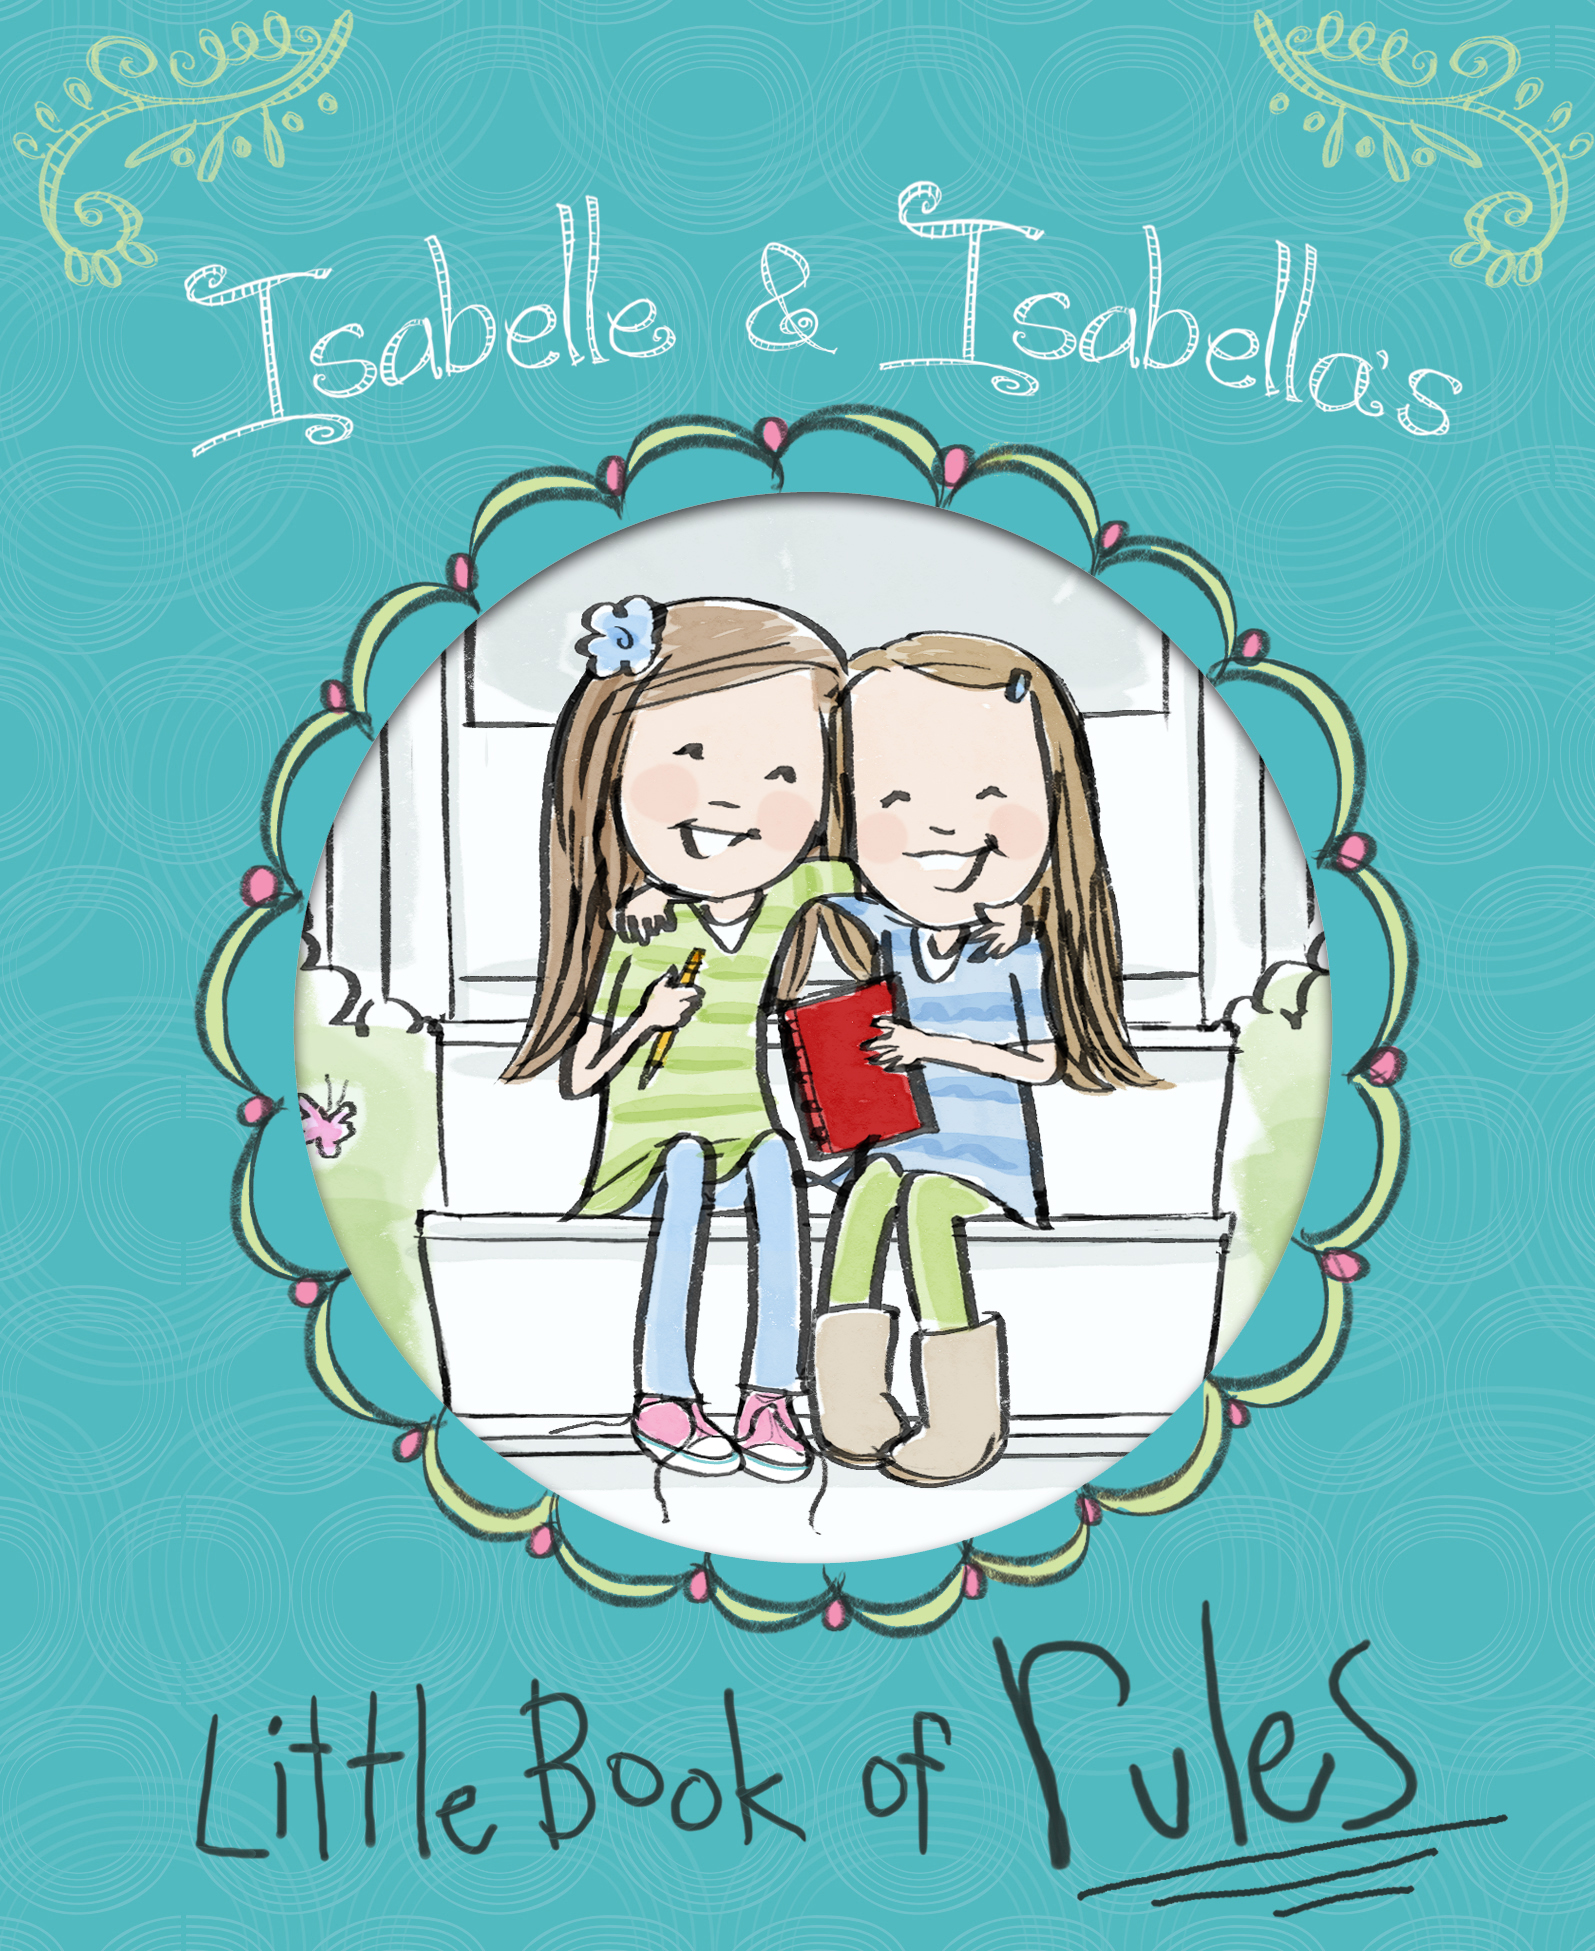 Isabelle isabellas little book of rules book by isabelle busath cvr9781442499805 9781442499805 hr isabelle isabellas little book solutioingenieria Choice Image